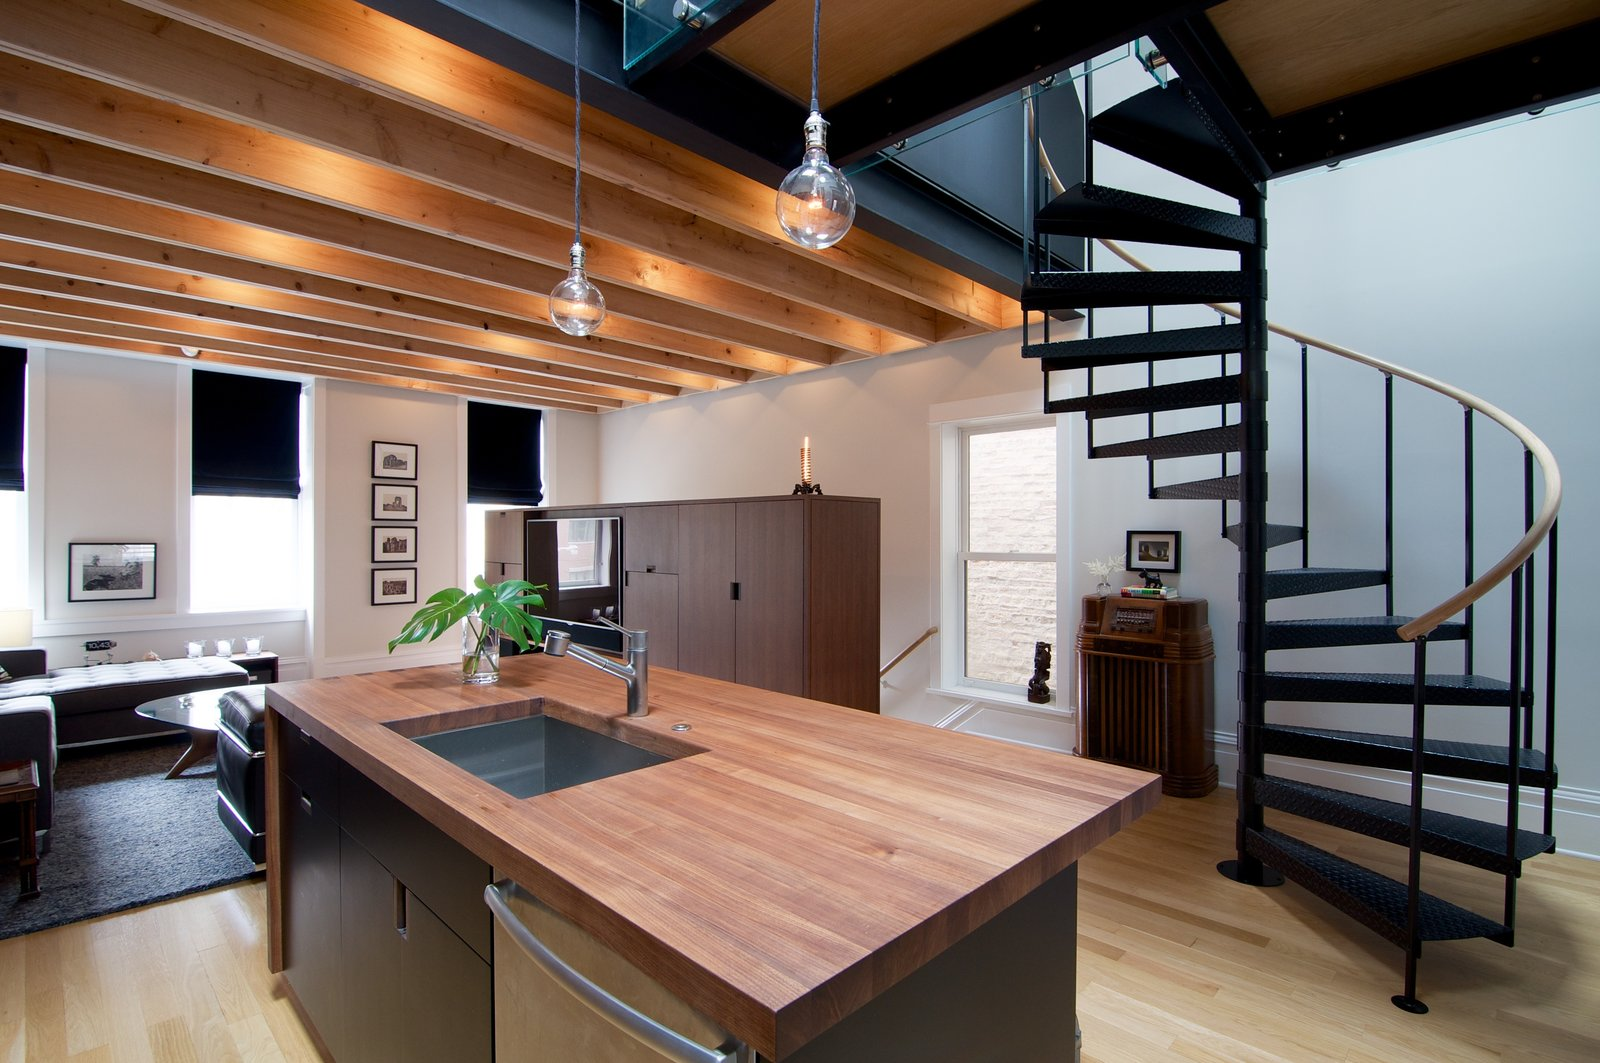 Wherever possible, Shively looked to work with local craftsmen. For example, all of the cabinetry was made by Lambright Woodworking, an Amish company in Indiana, and custom doors and trim were made by Jarzab Construction, a team of local Polish carpenters.  Photo 2 of 8 in A Chicago Renovation Taps Into its Attic to Almost Double its Square Footage